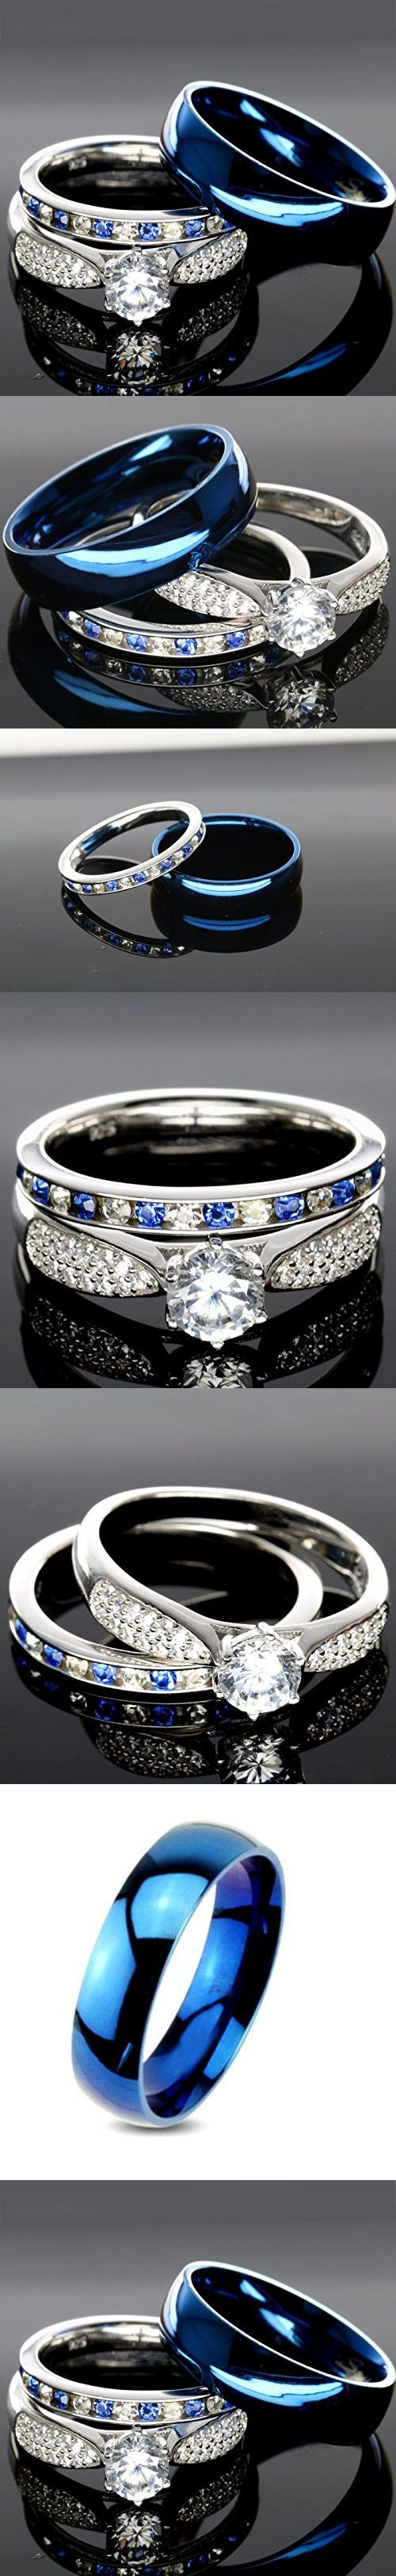 collective steel ring dyrberg women s kern rings jewellery vestiaire blue